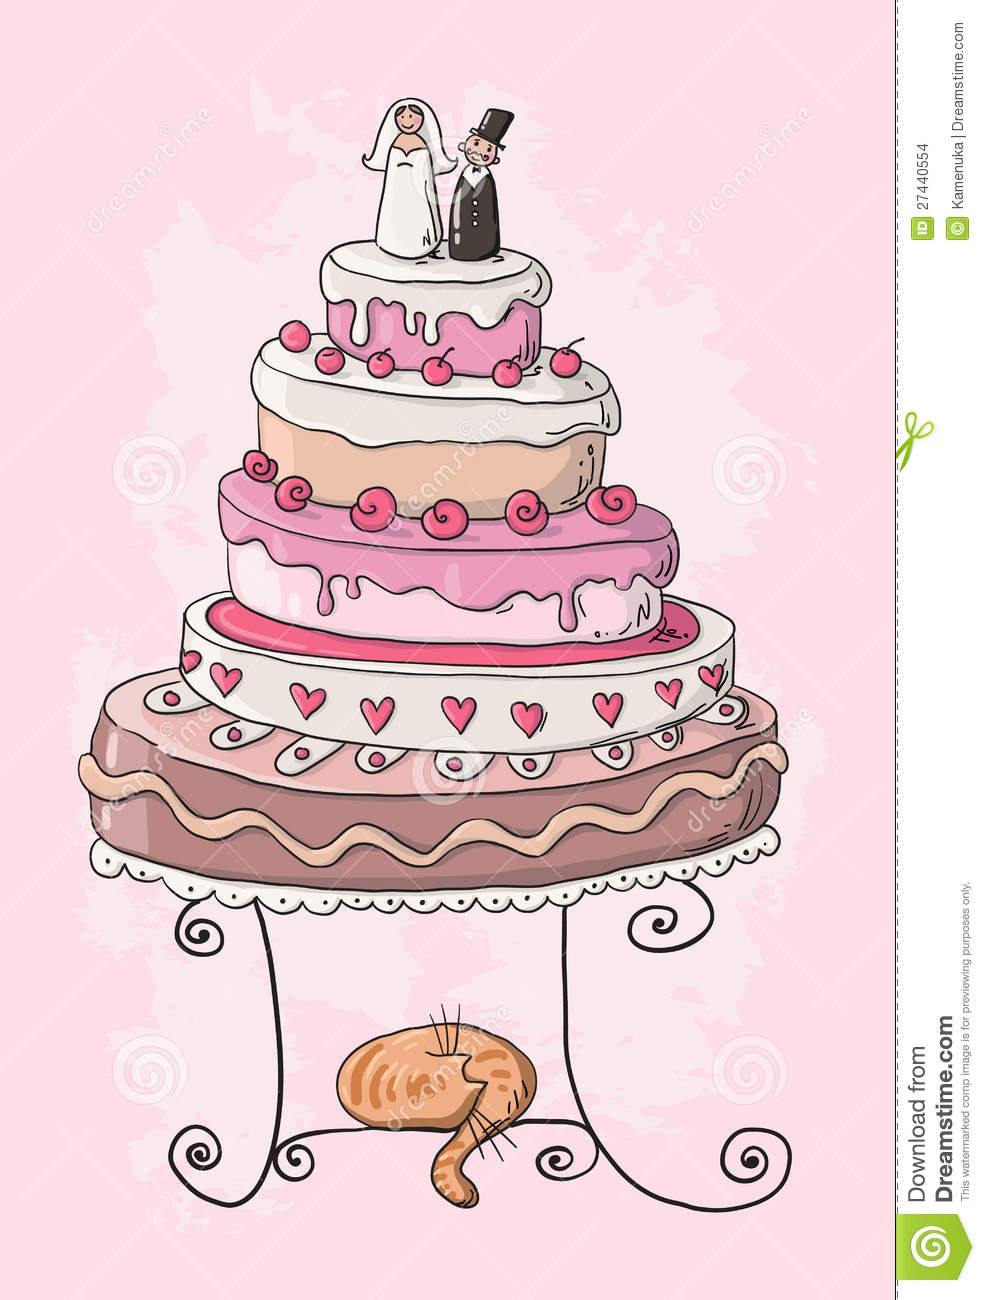 Wedding Cake Images Cartoon : Wedding Cake Cartoon Stock Images - Image: 27440554